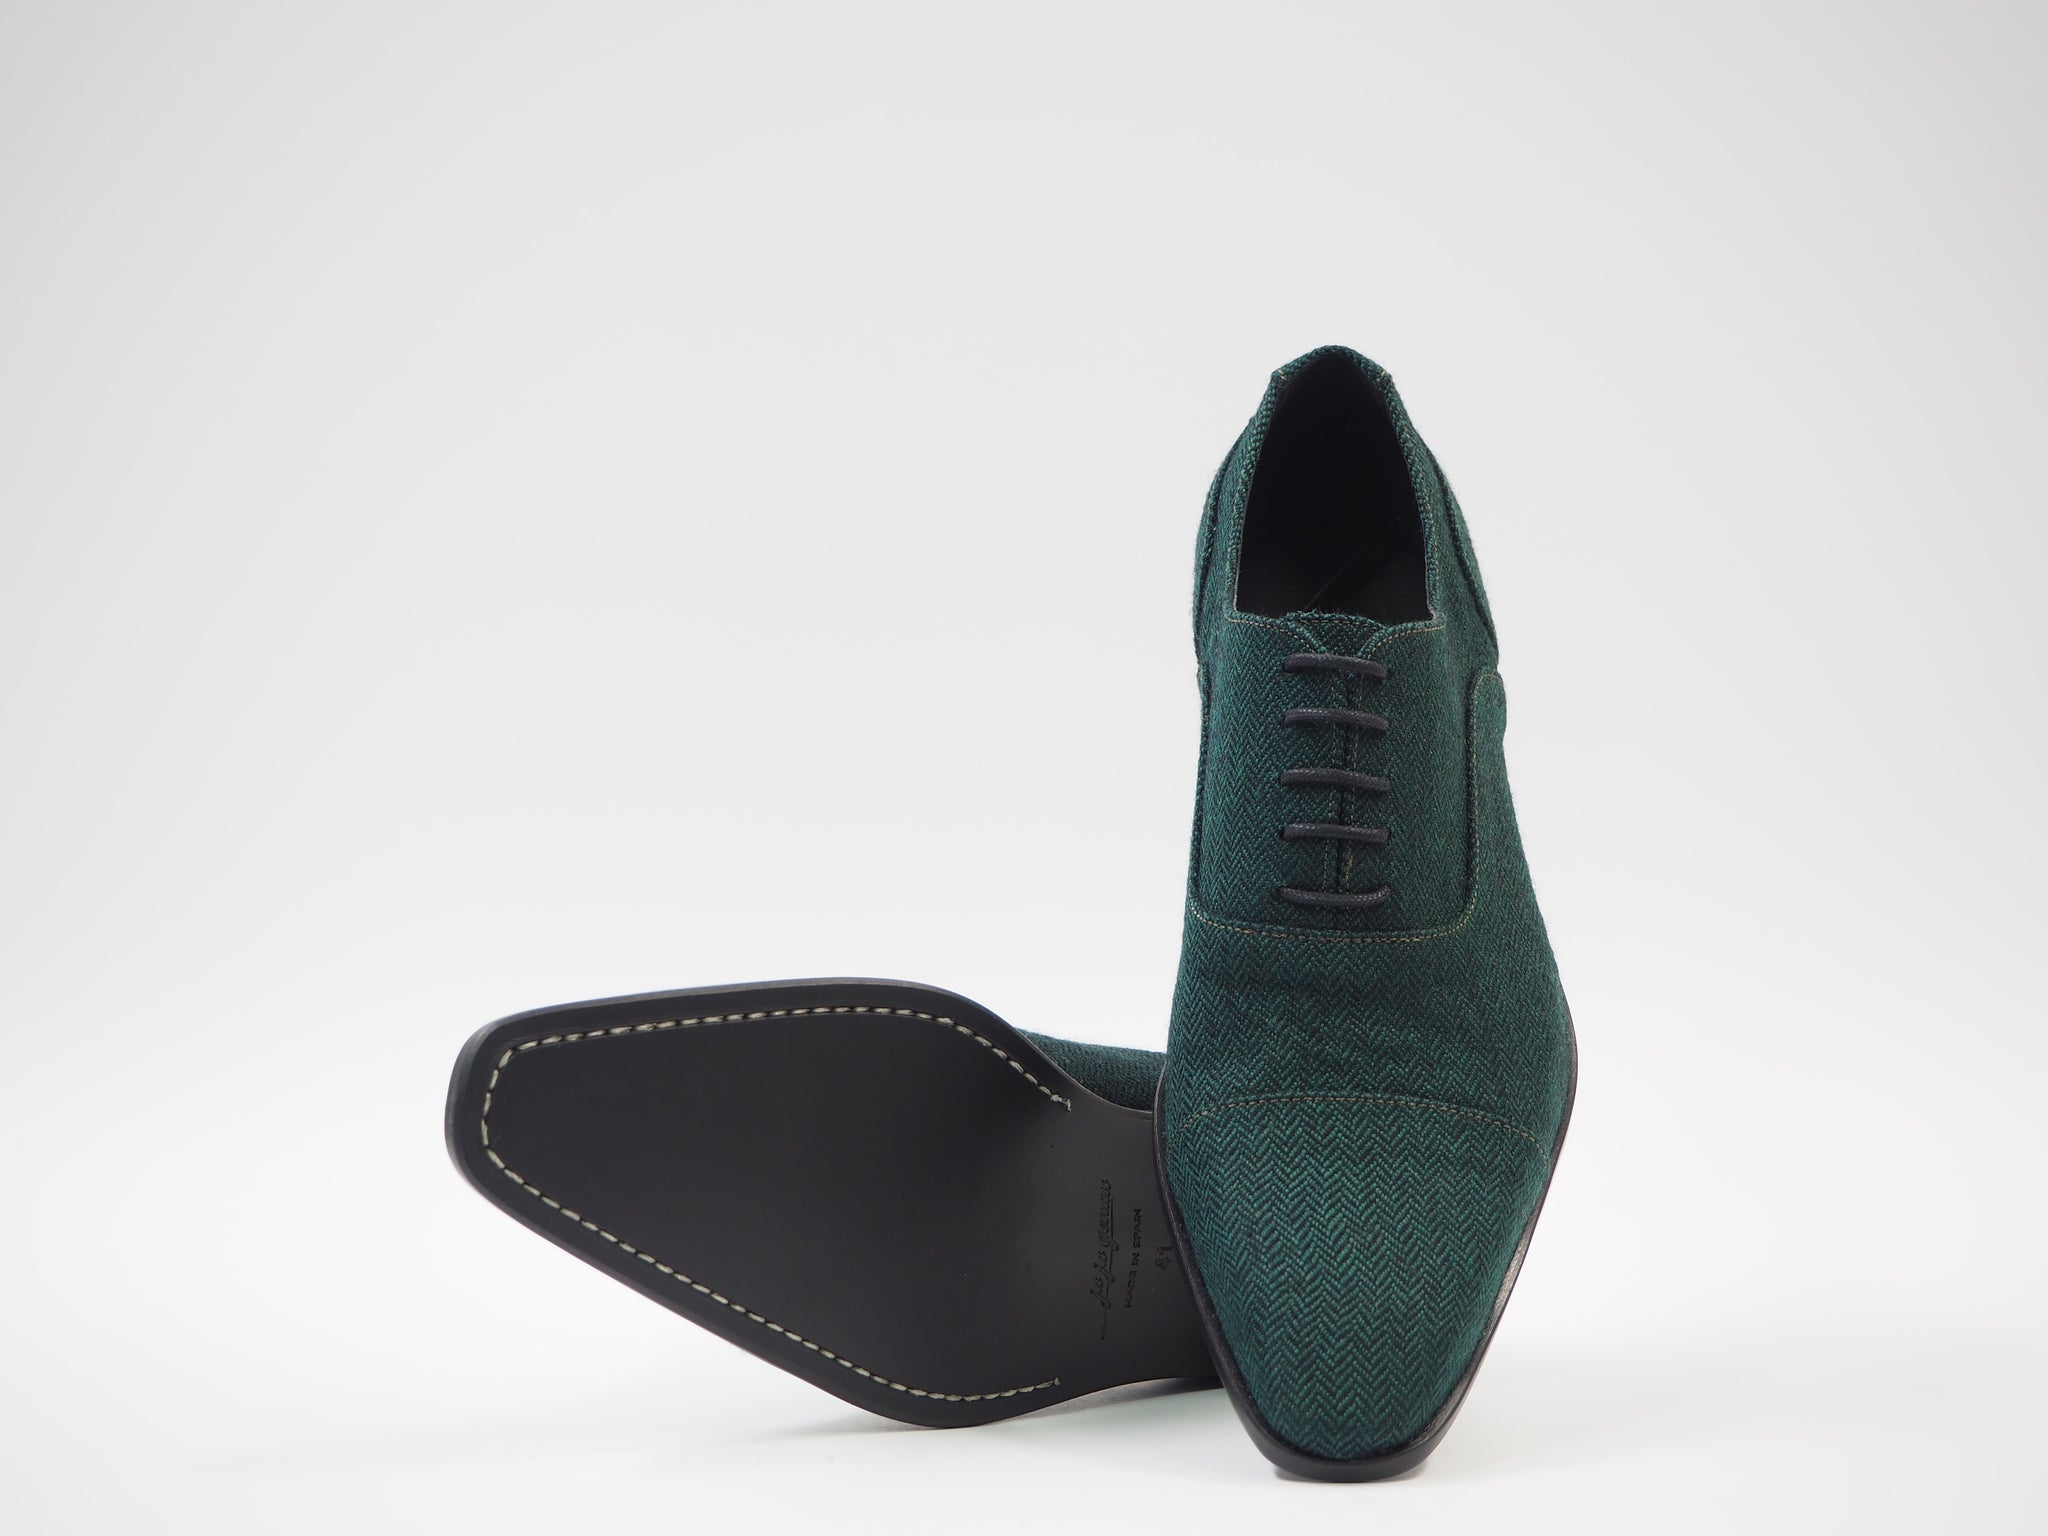 Size 41 - Green & Black Herringbone Oxford + Belt